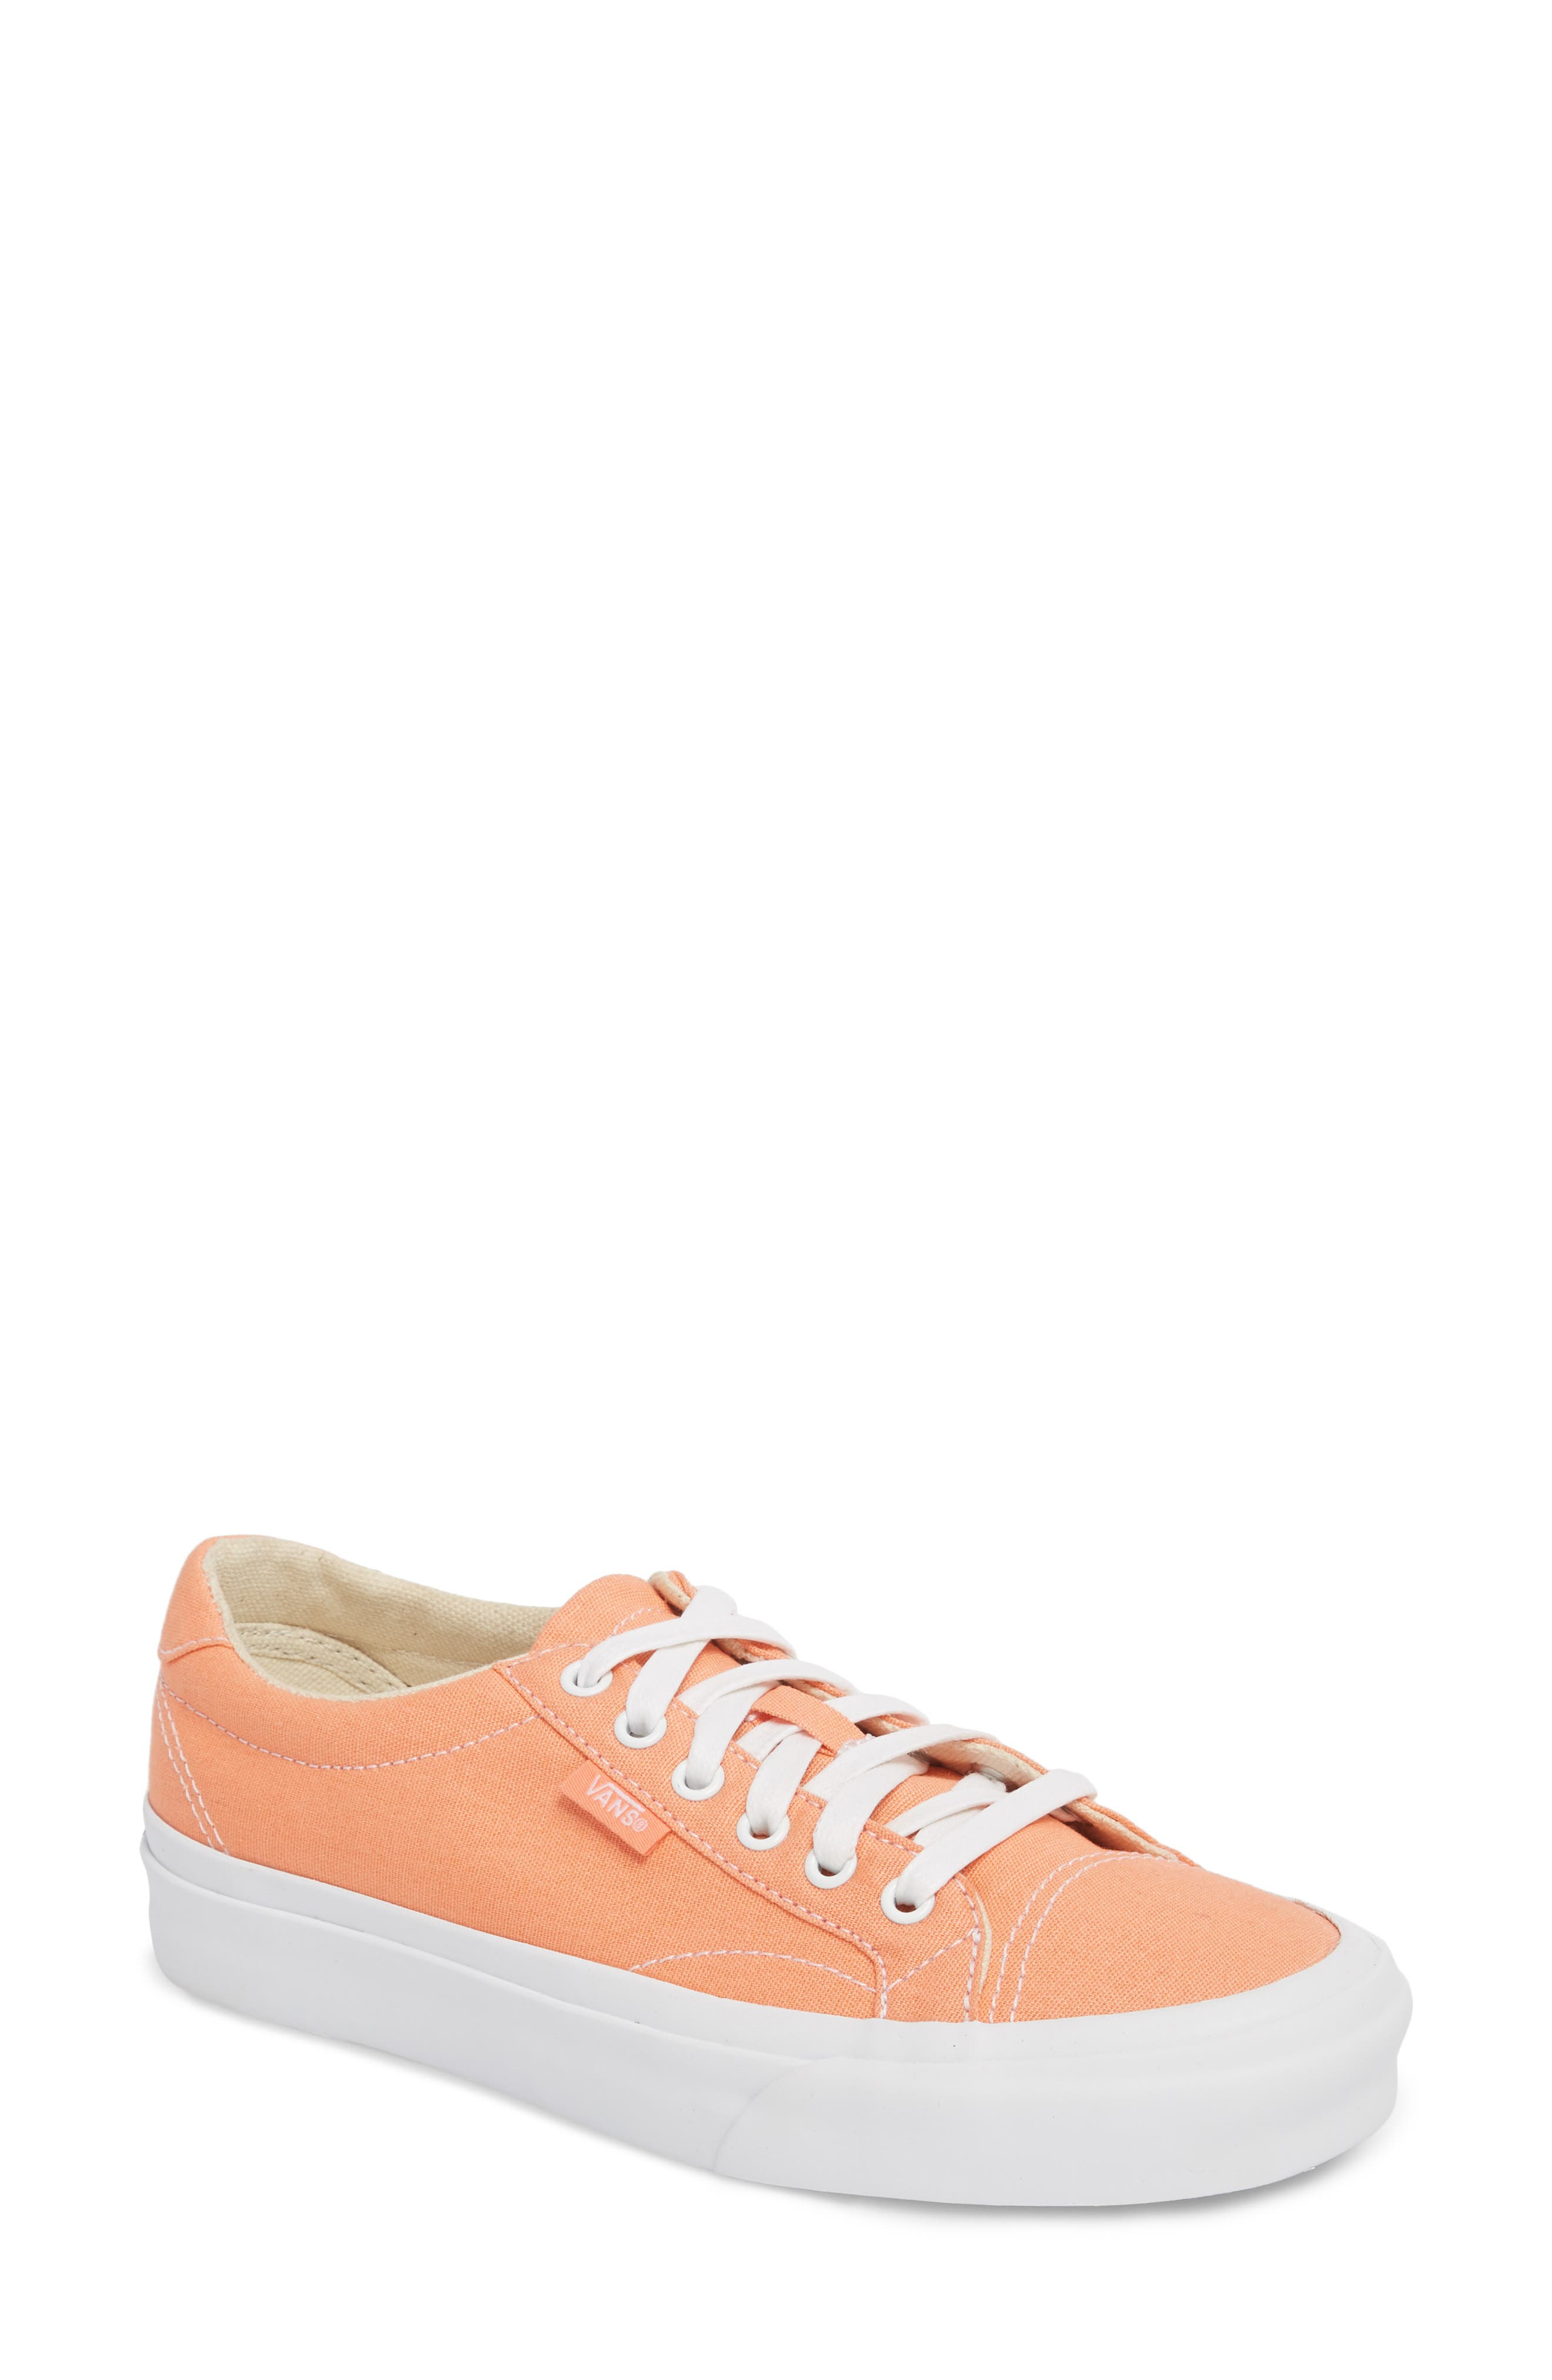 UA Court Low Top Sneaker,                         Main,                         color, Peach Pink/ True White